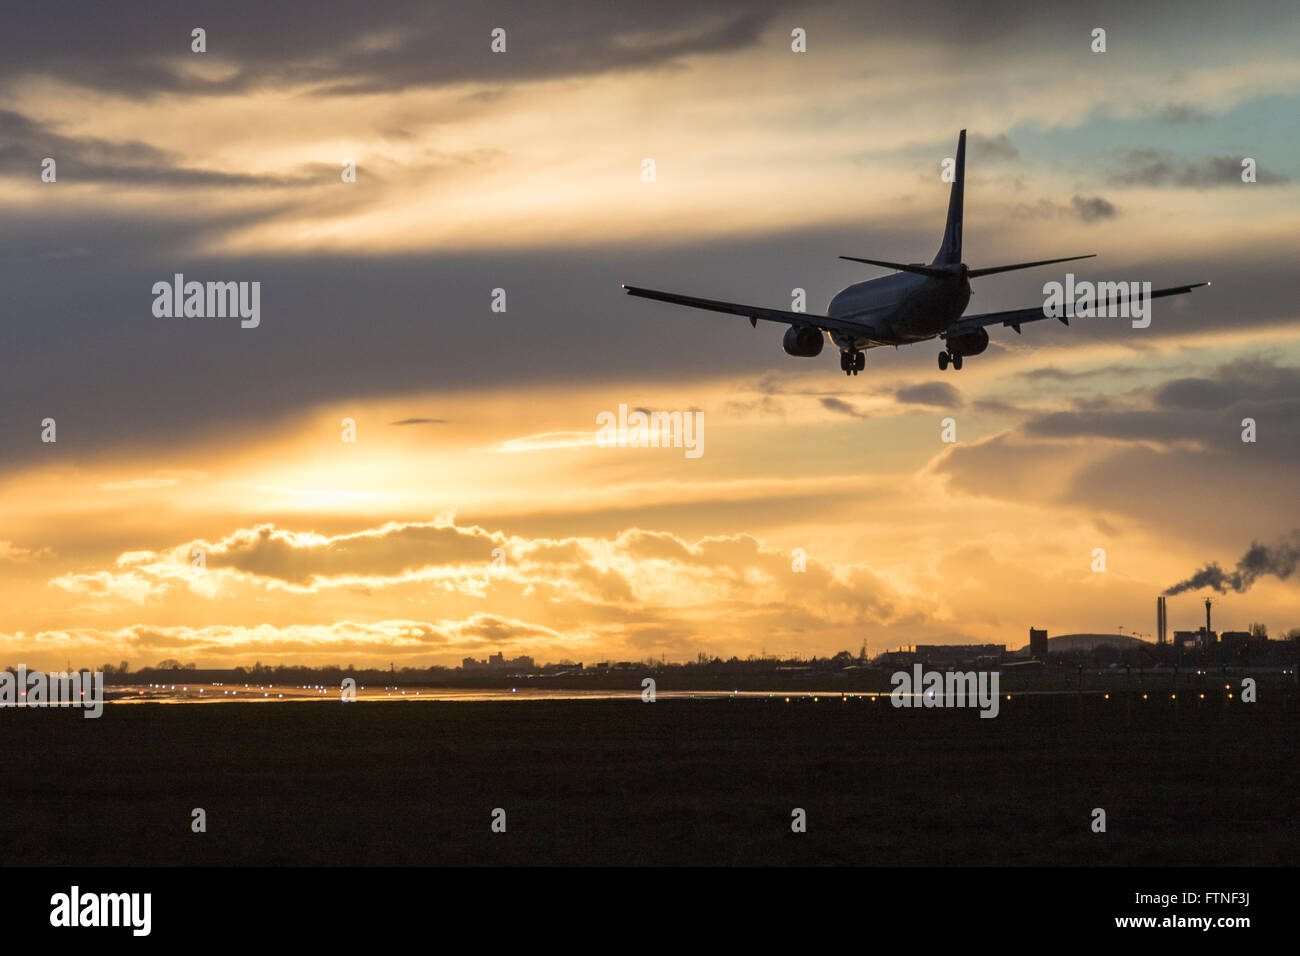 A Boeing 737 is silhouetted against clouds illuminated by the setting sun, about to land at London Heathrow. - Stock Image